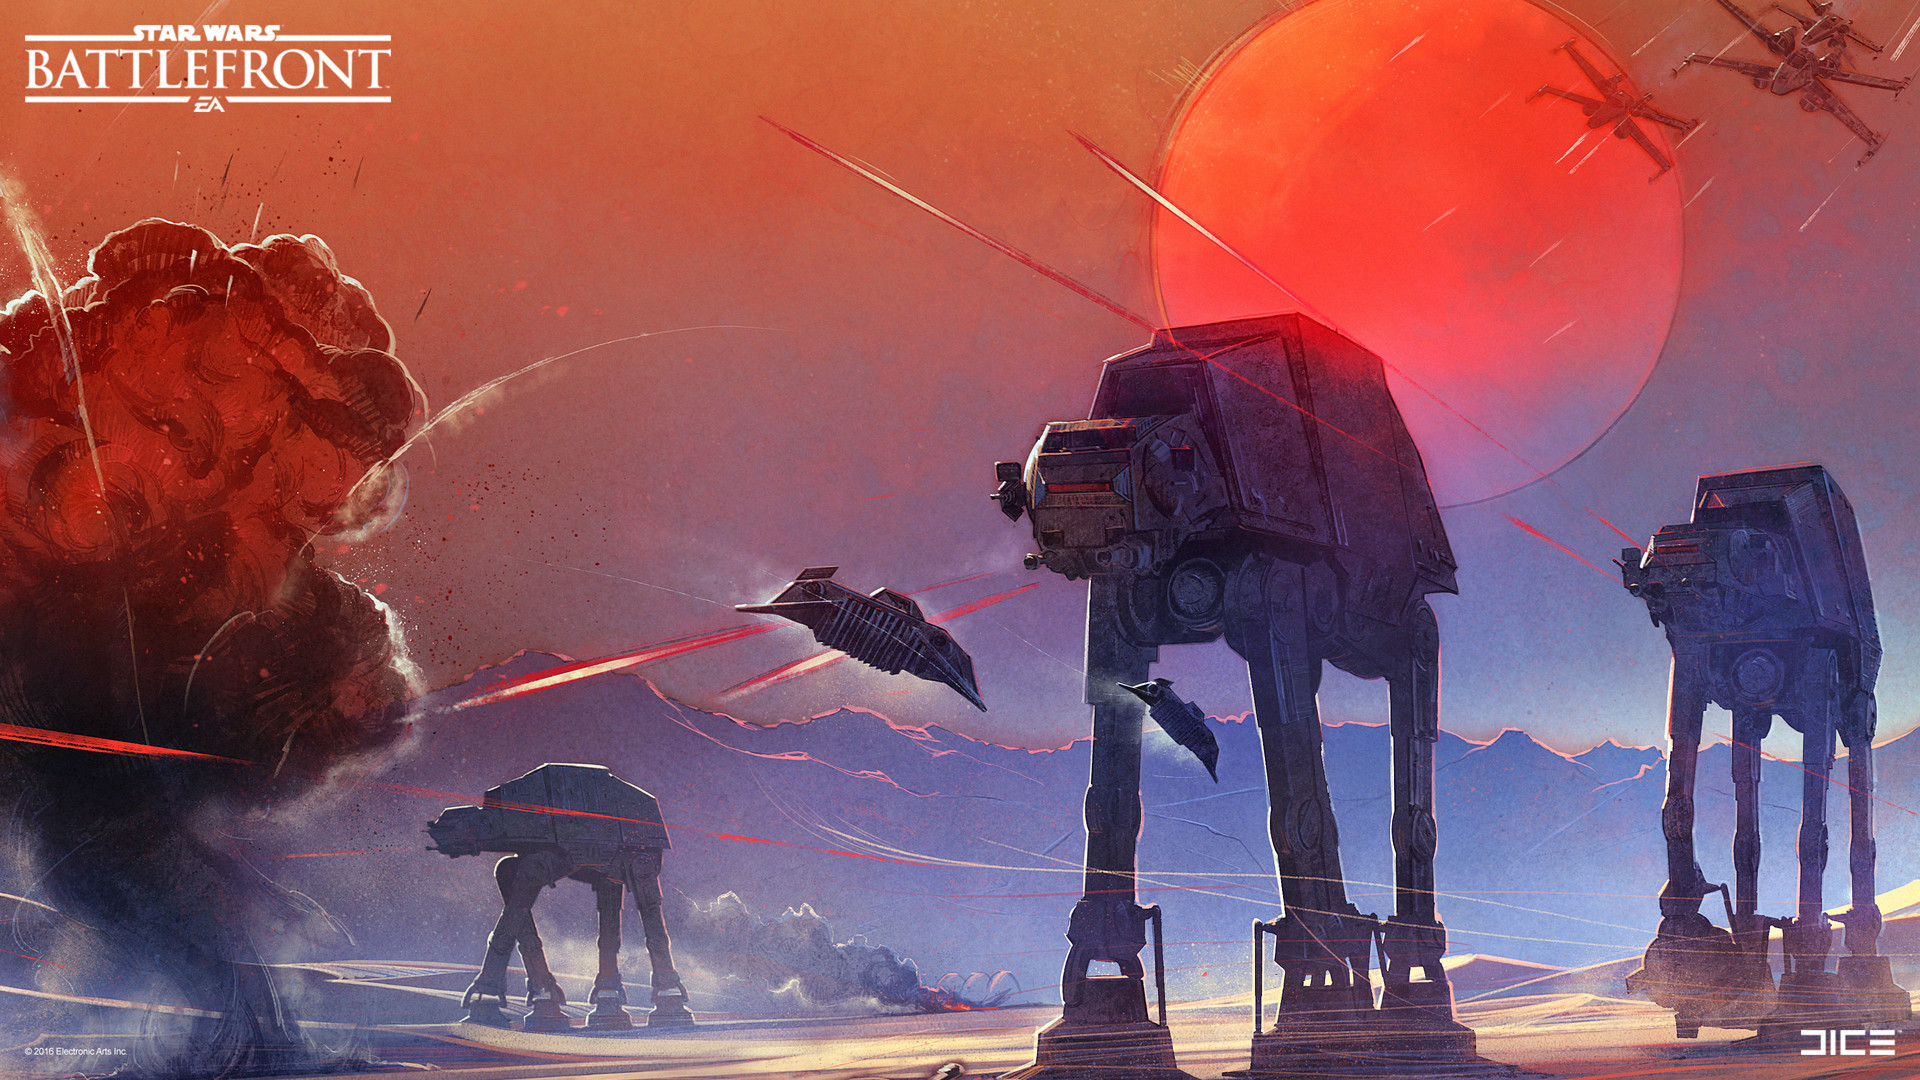 The Art of Star Wars Battlefront by Anton Grandert